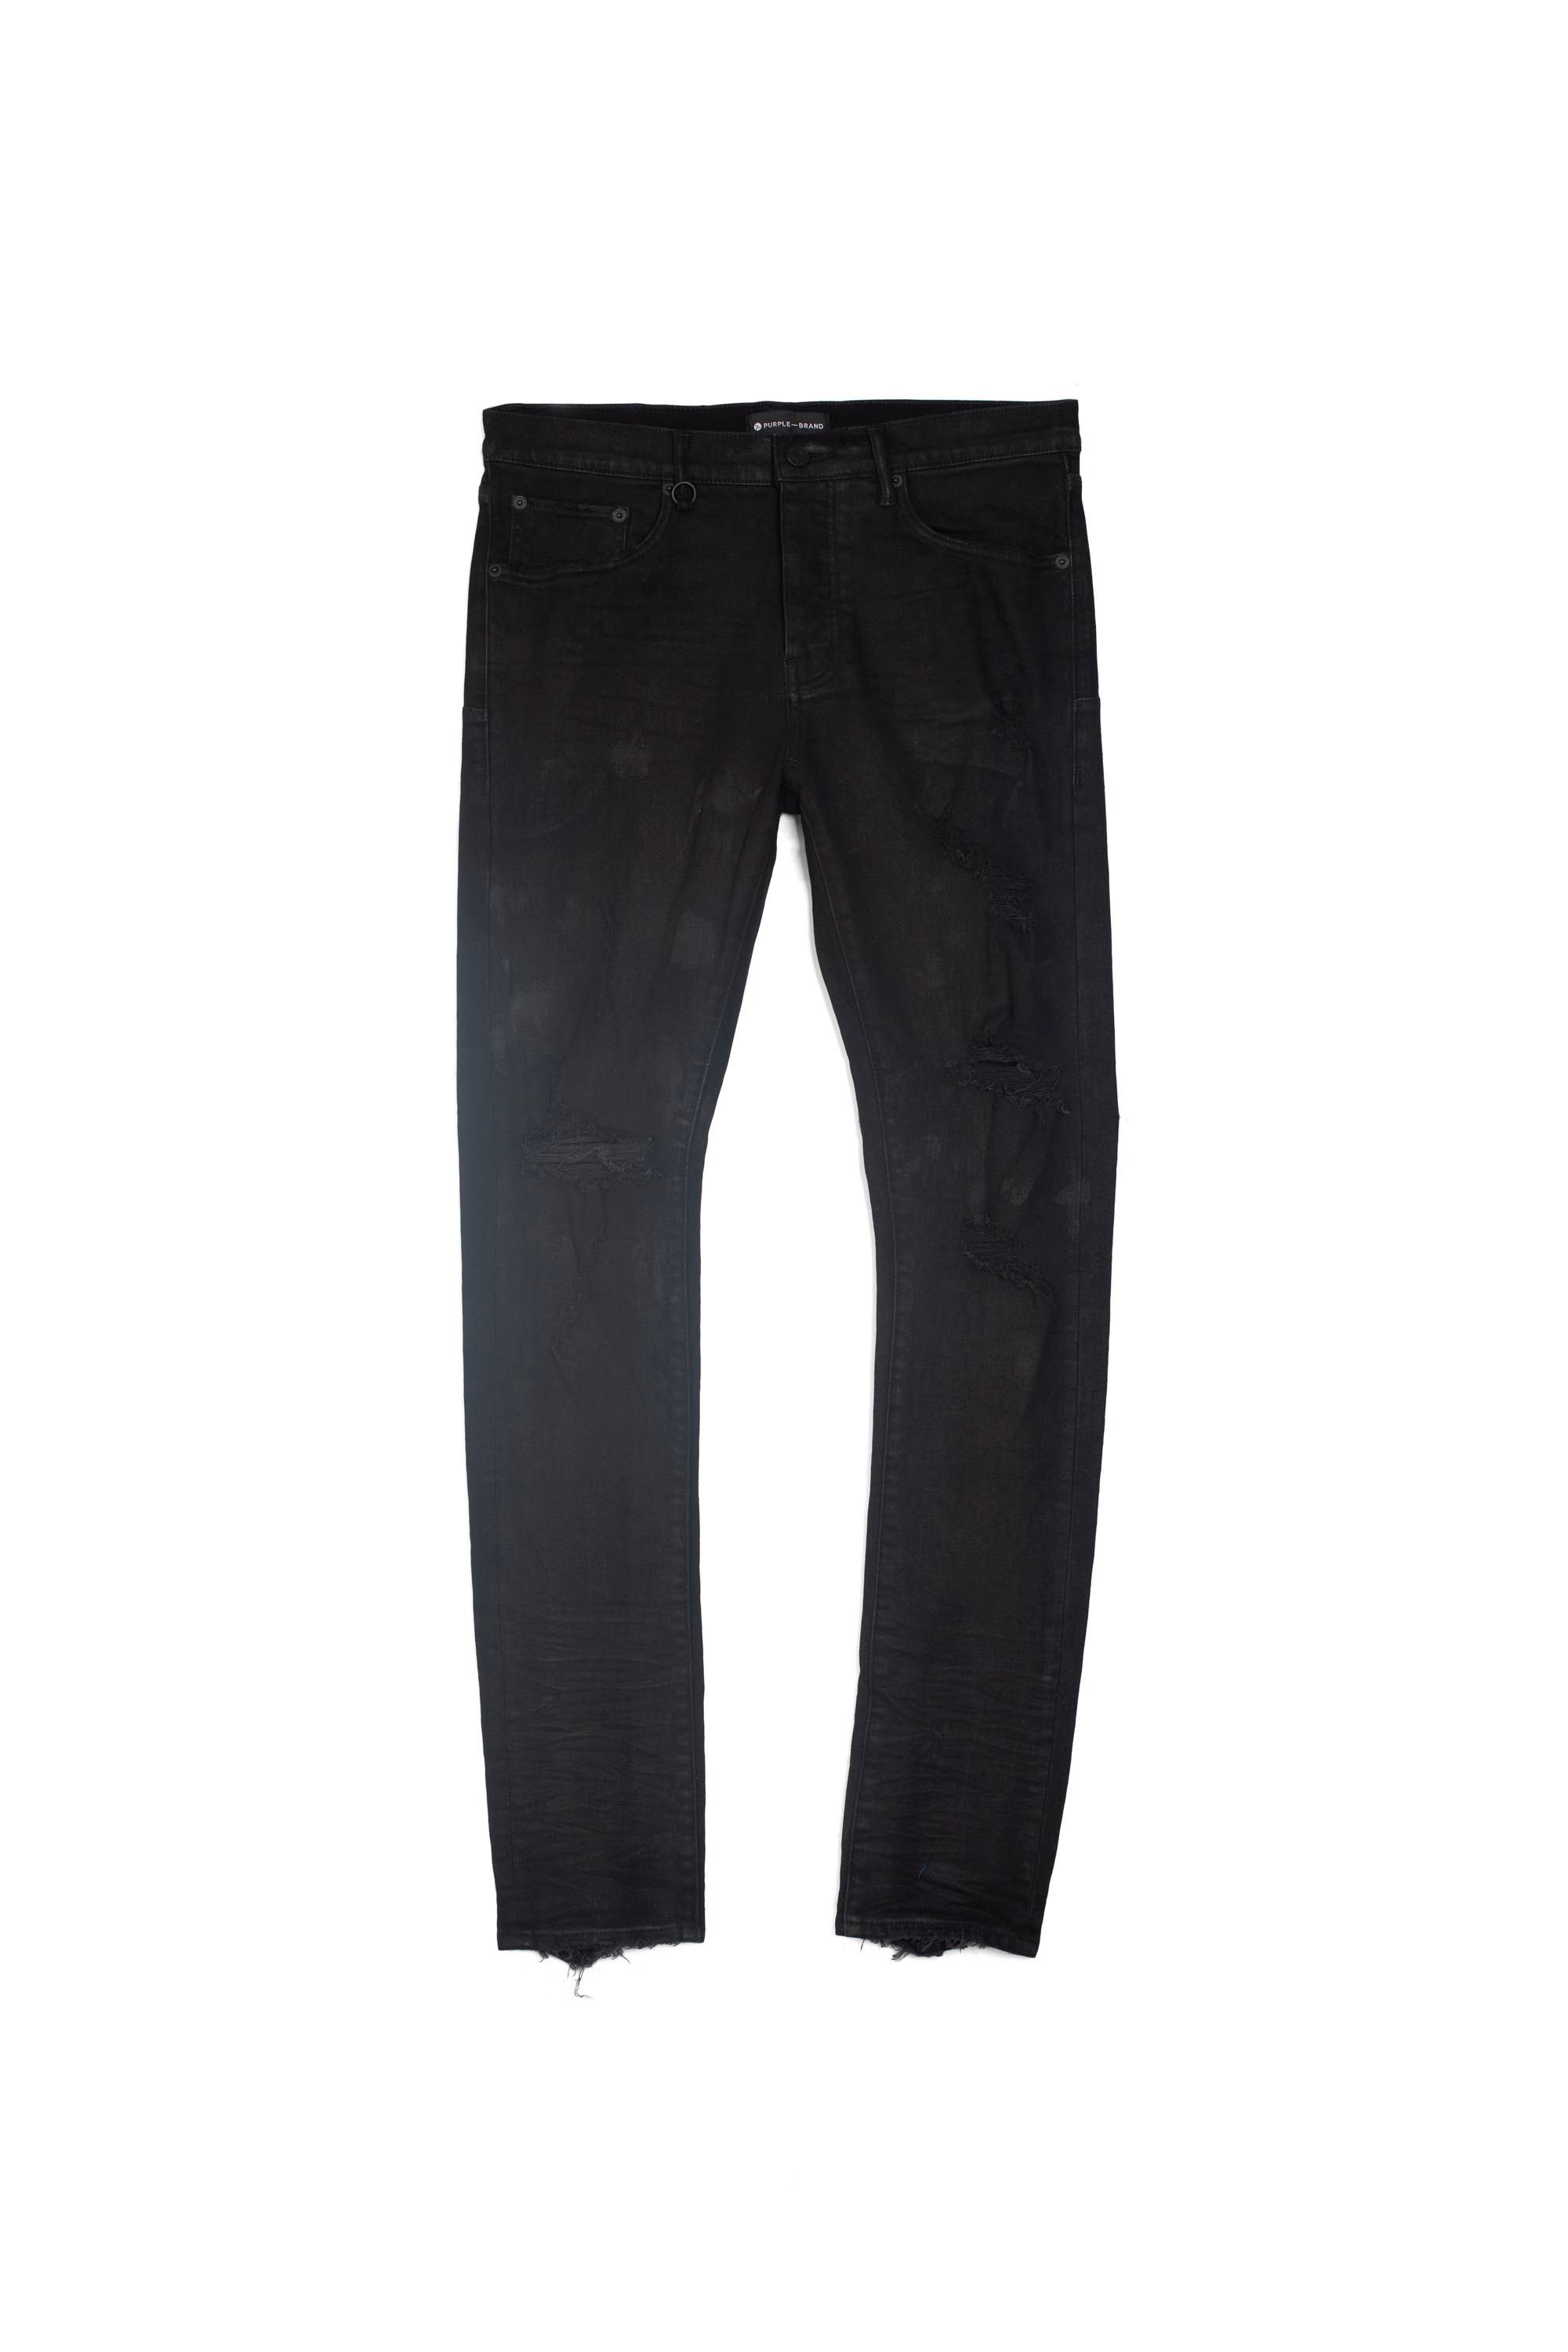 PURPLE M'S PANTS P001 LOW RISE WITH SLIM LEG - BLACK OIL SPILL